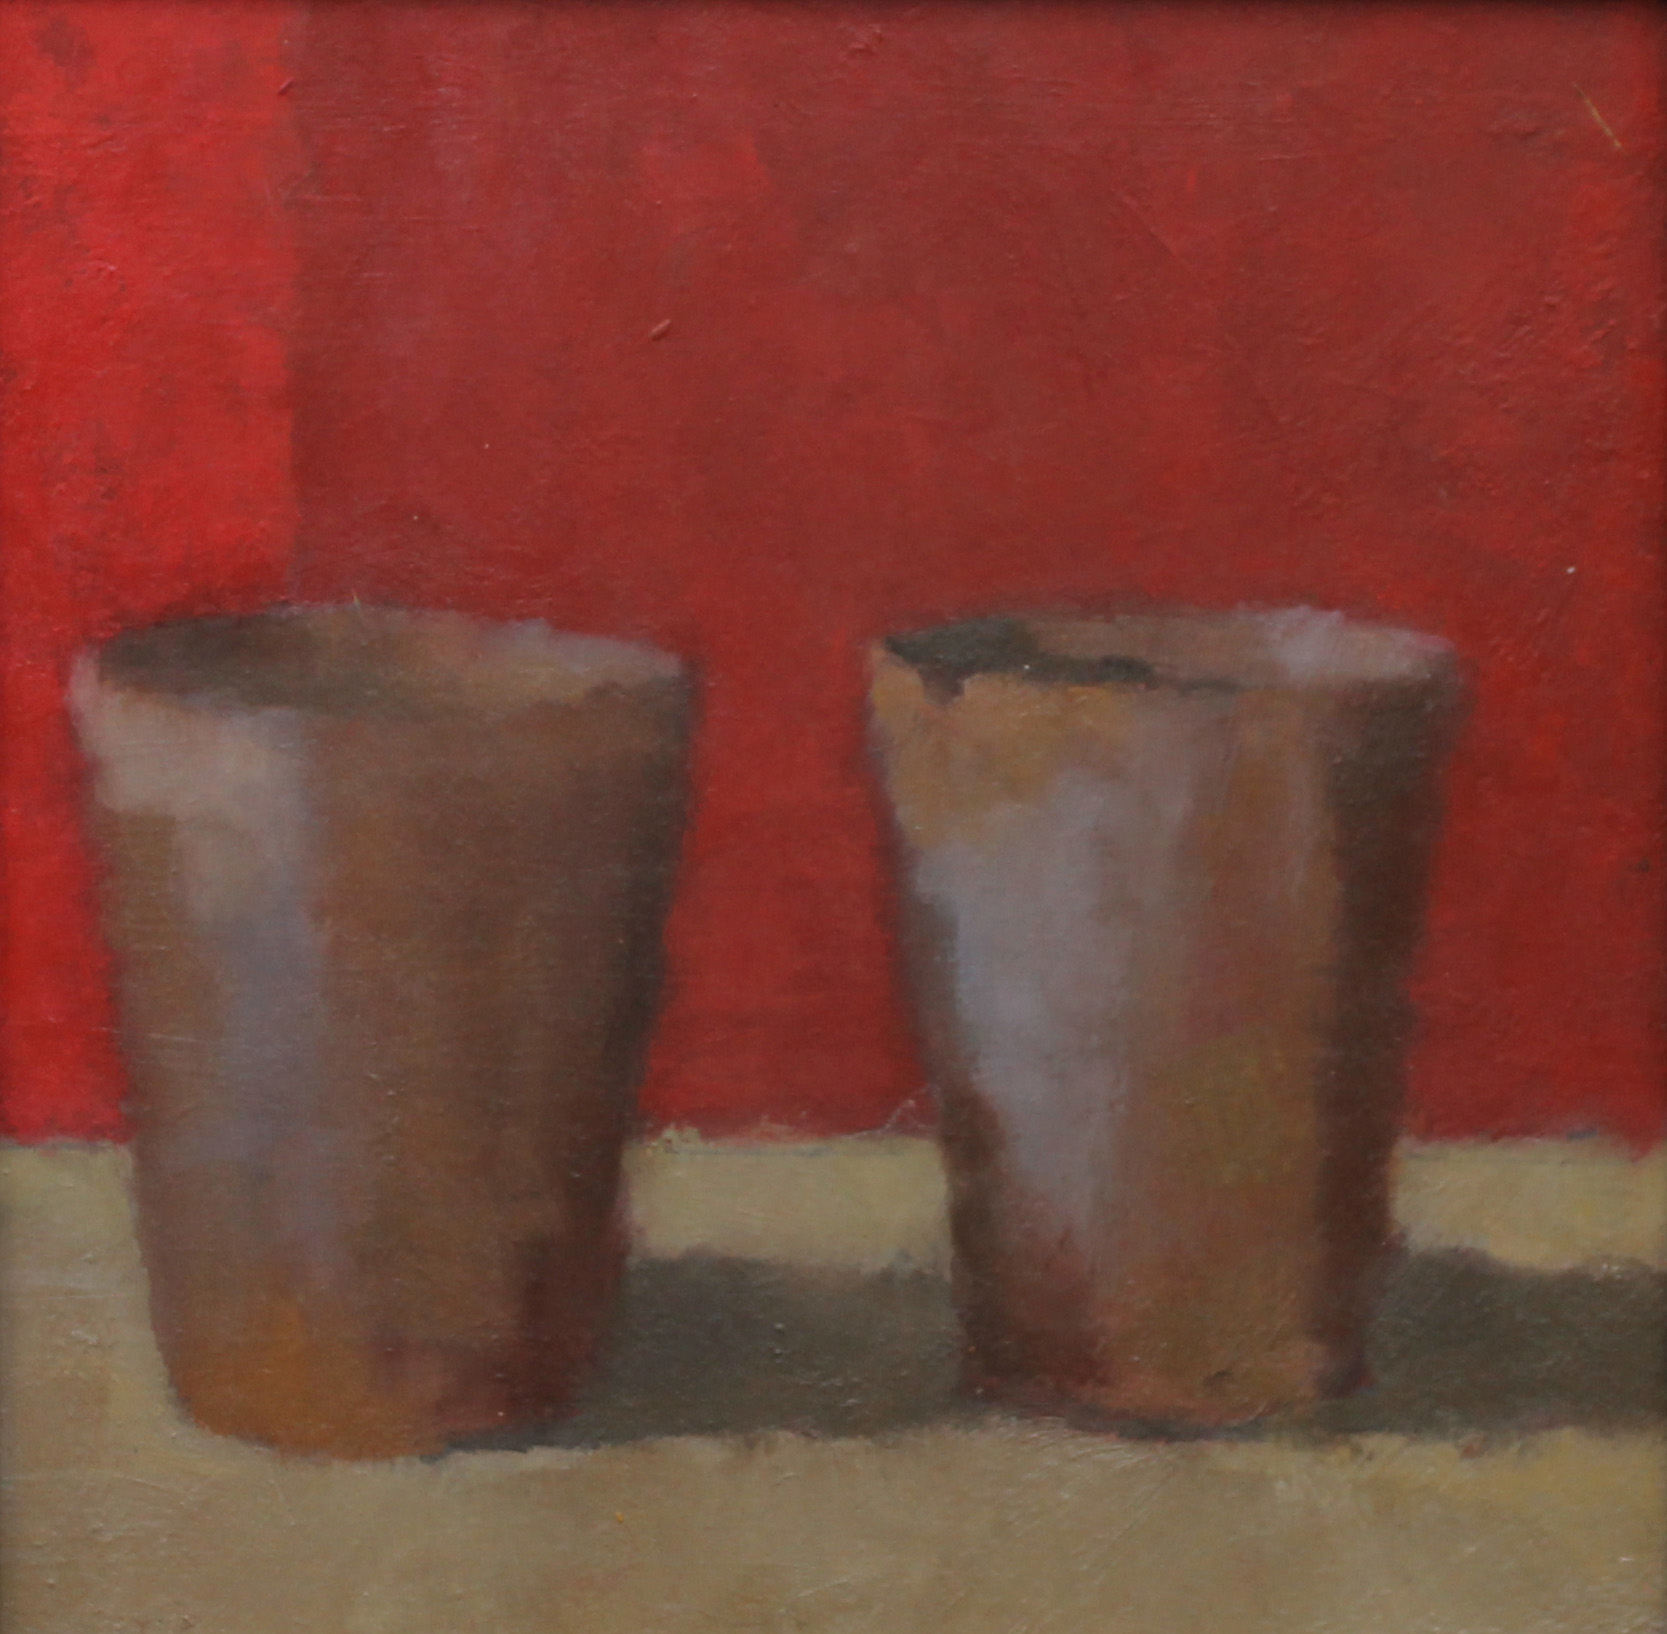 Two Pots Red  Oil on Board  20x20 cm